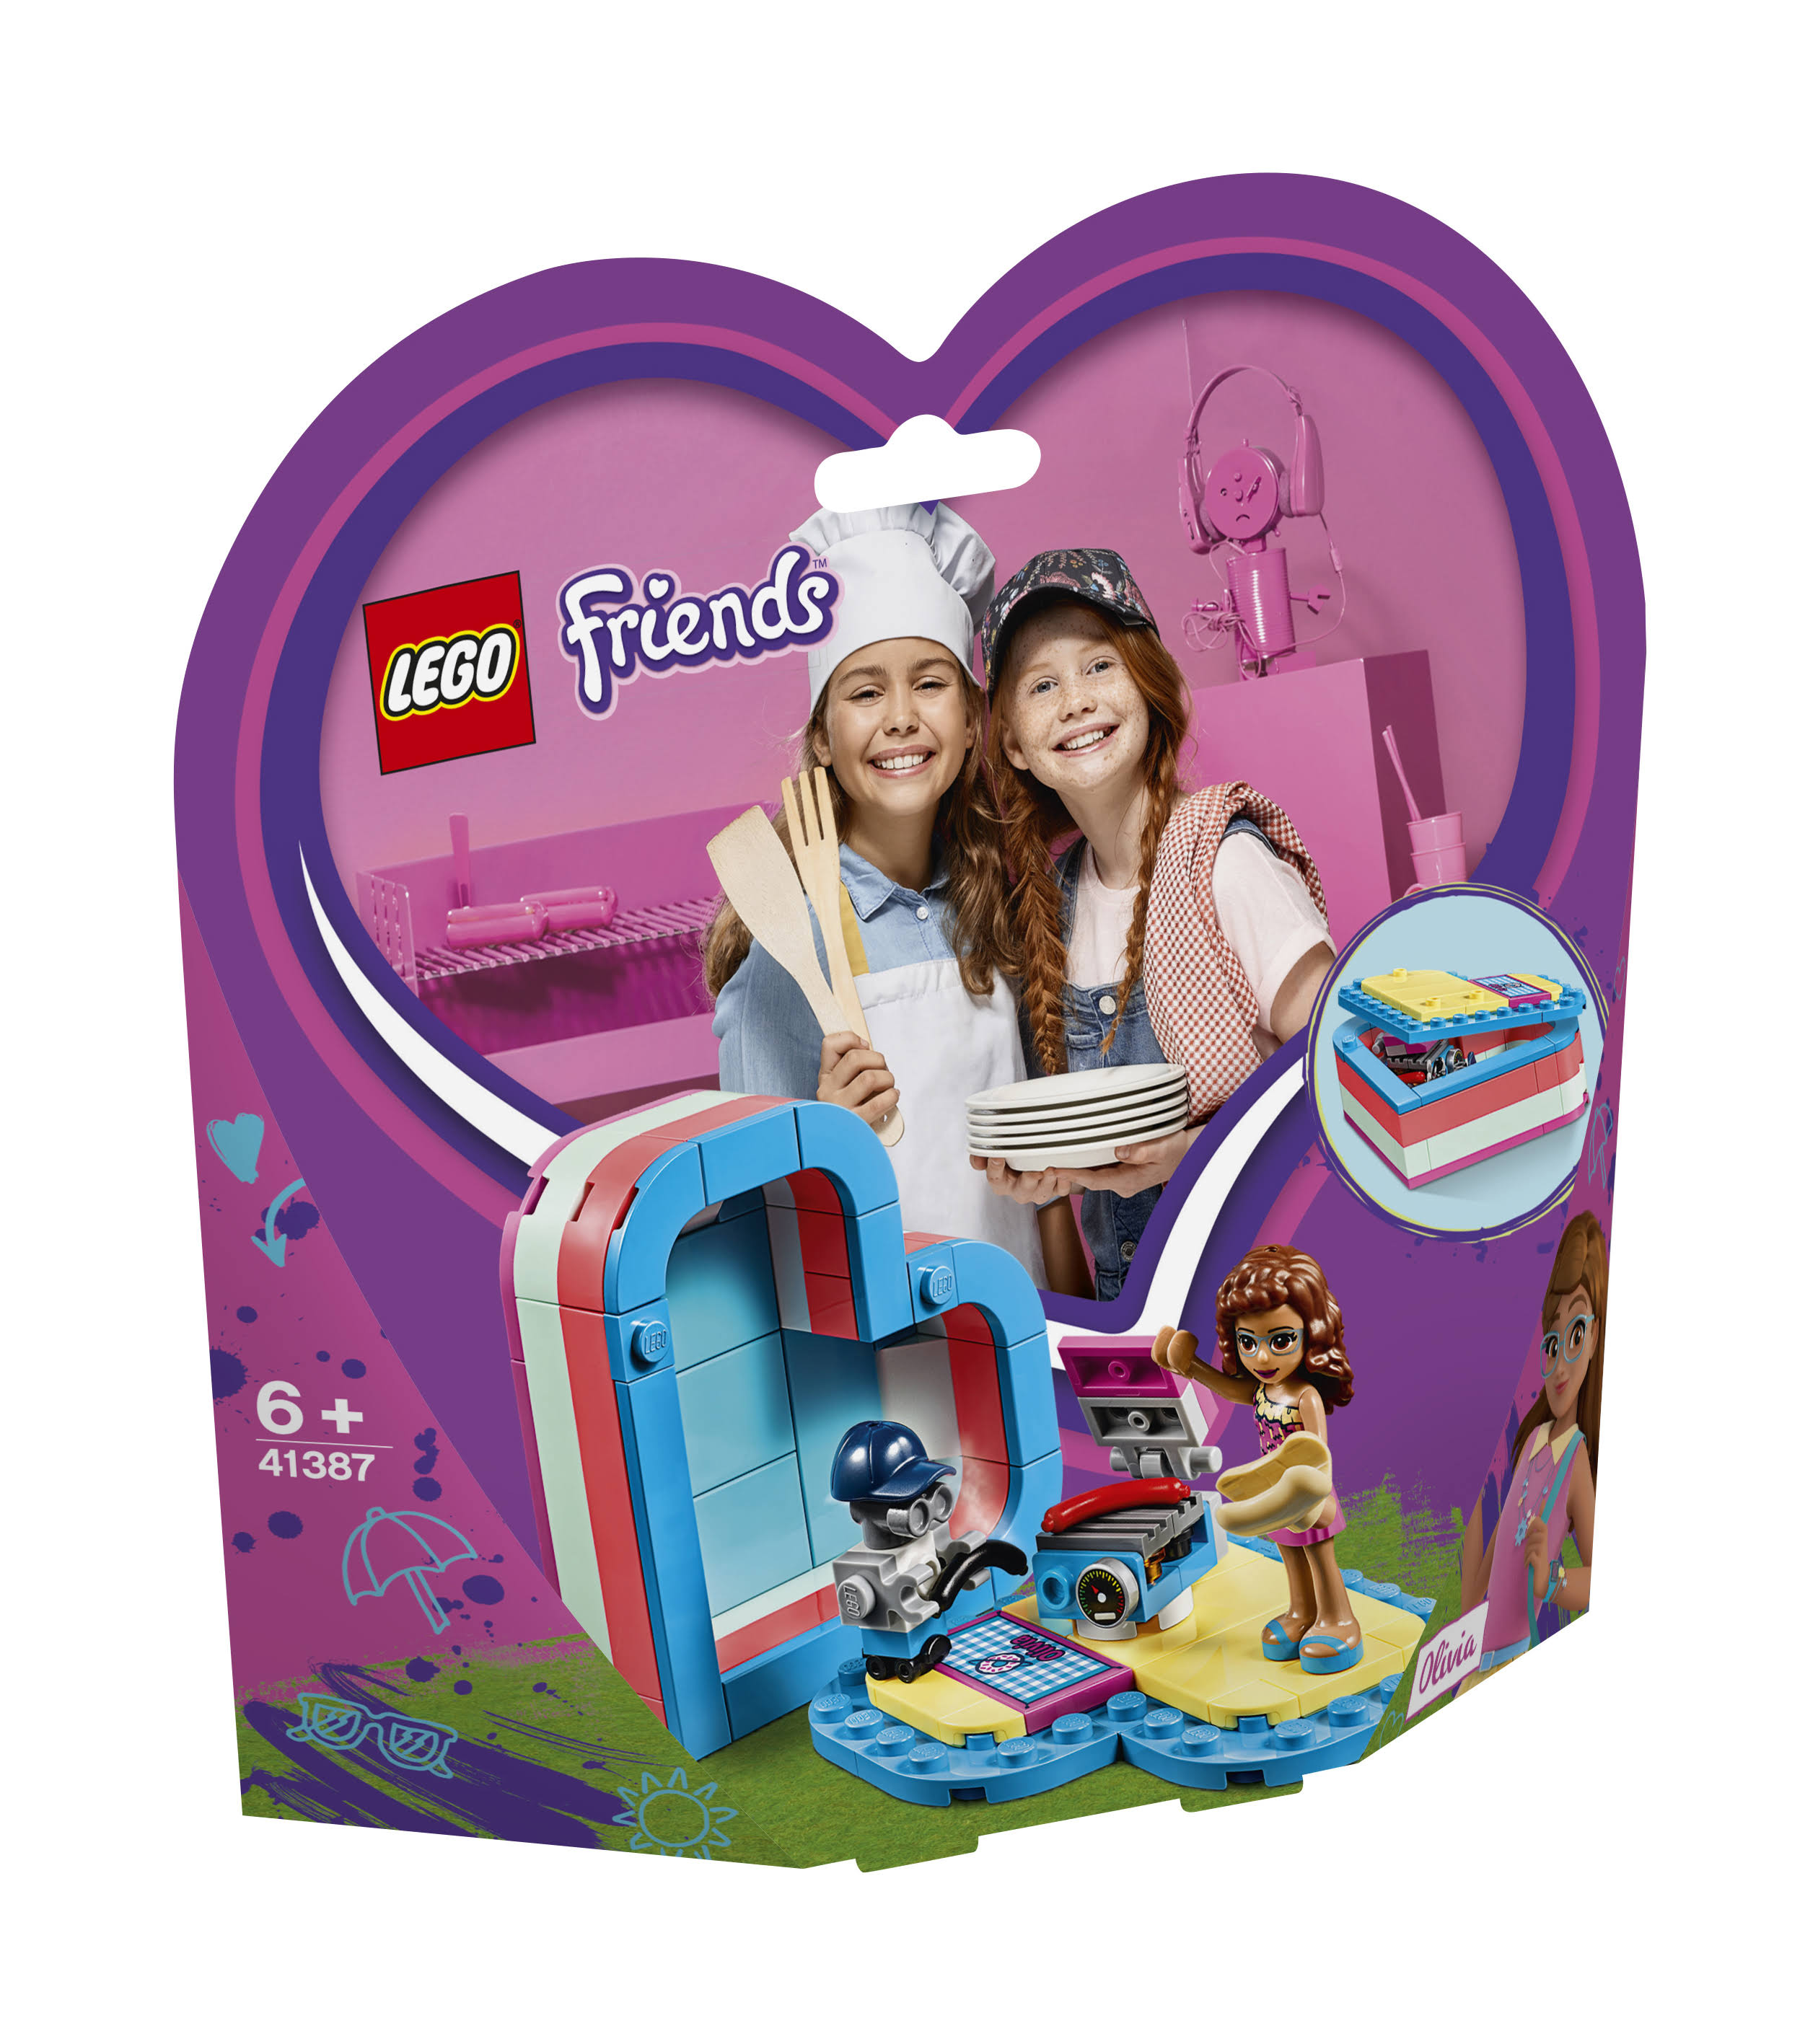 Lego 41387 Friends Olivia's Summer Heart Box Building Toy - 93pcs